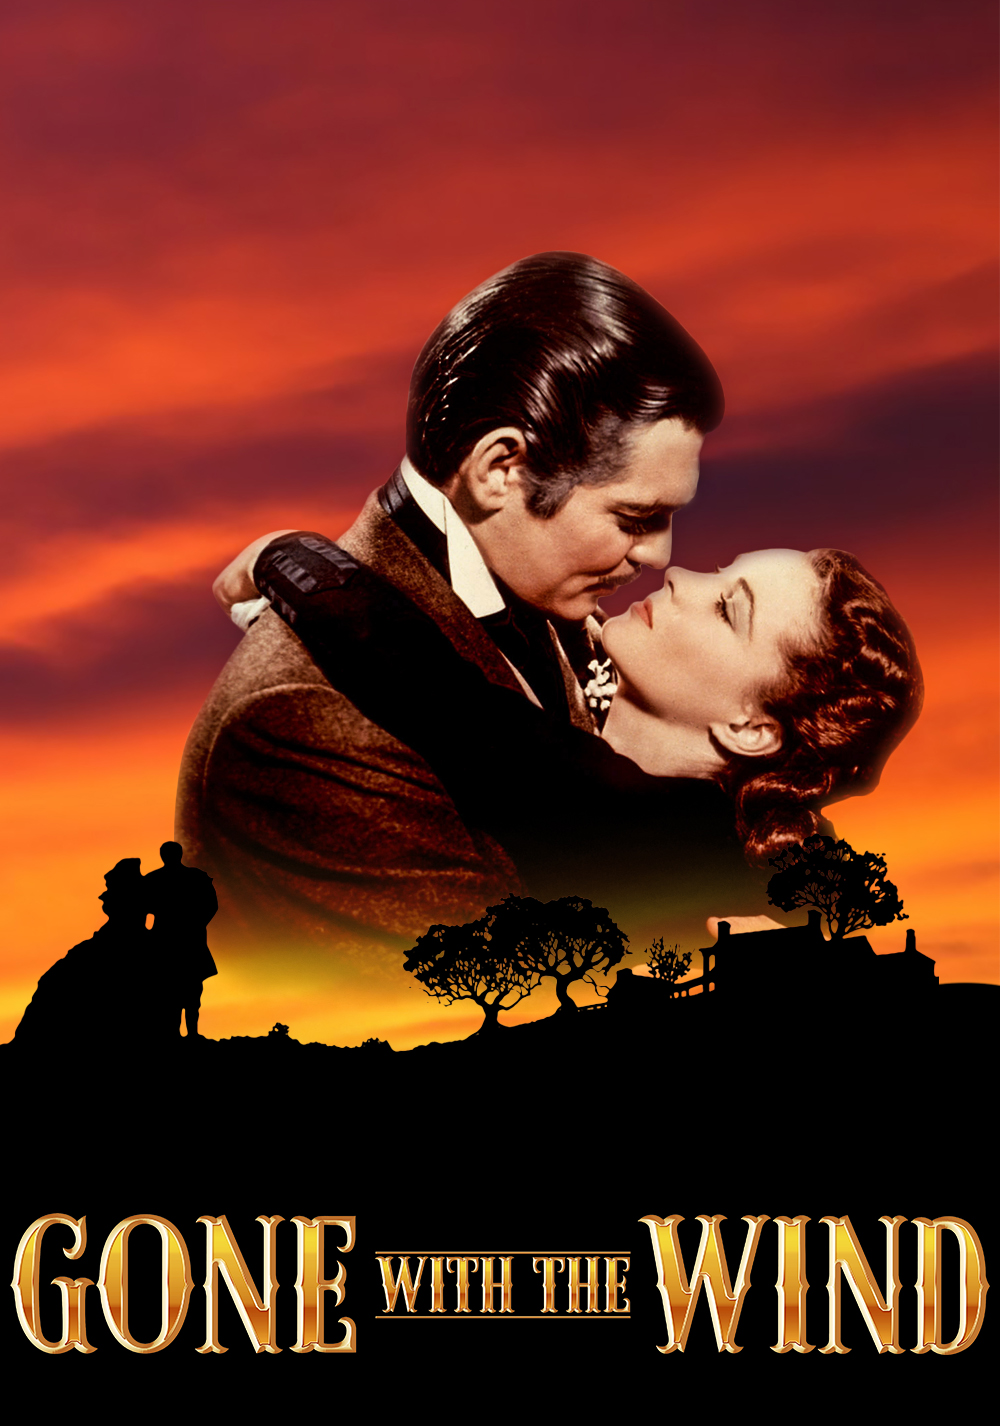 Friday Night at the Movies – Gone with the Wind